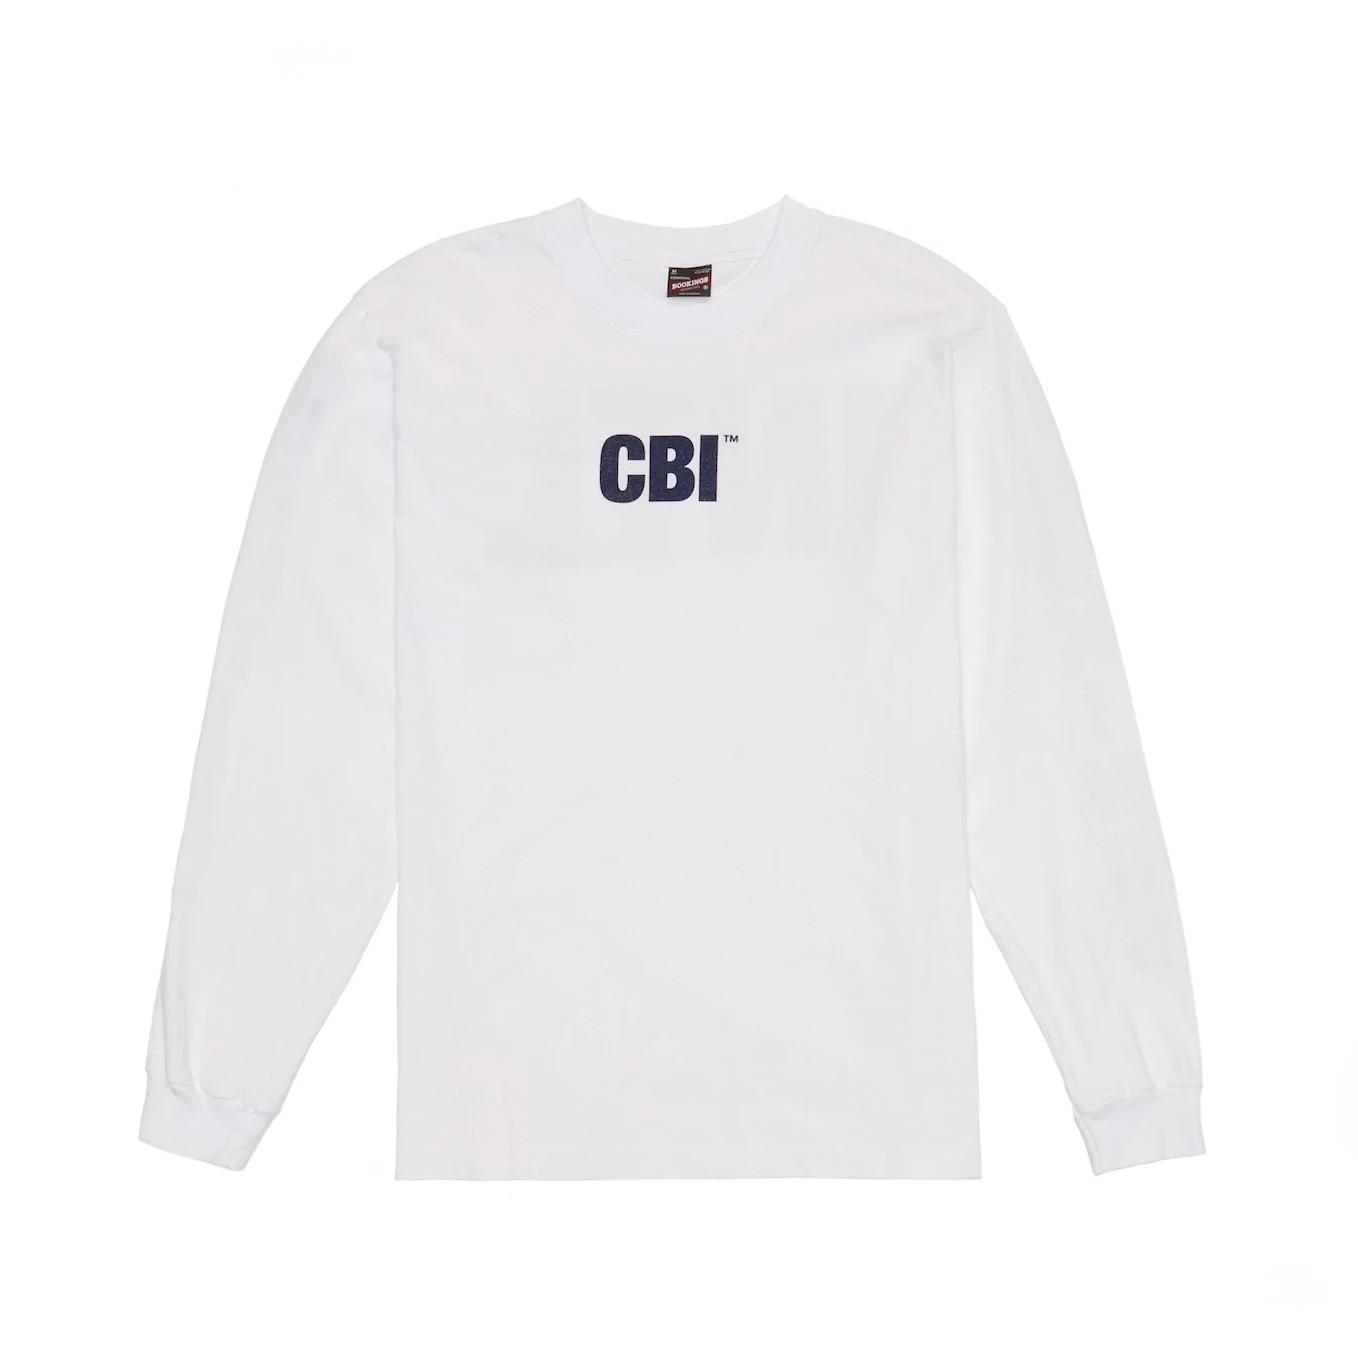 CBI Inmate Long Sleeve - White